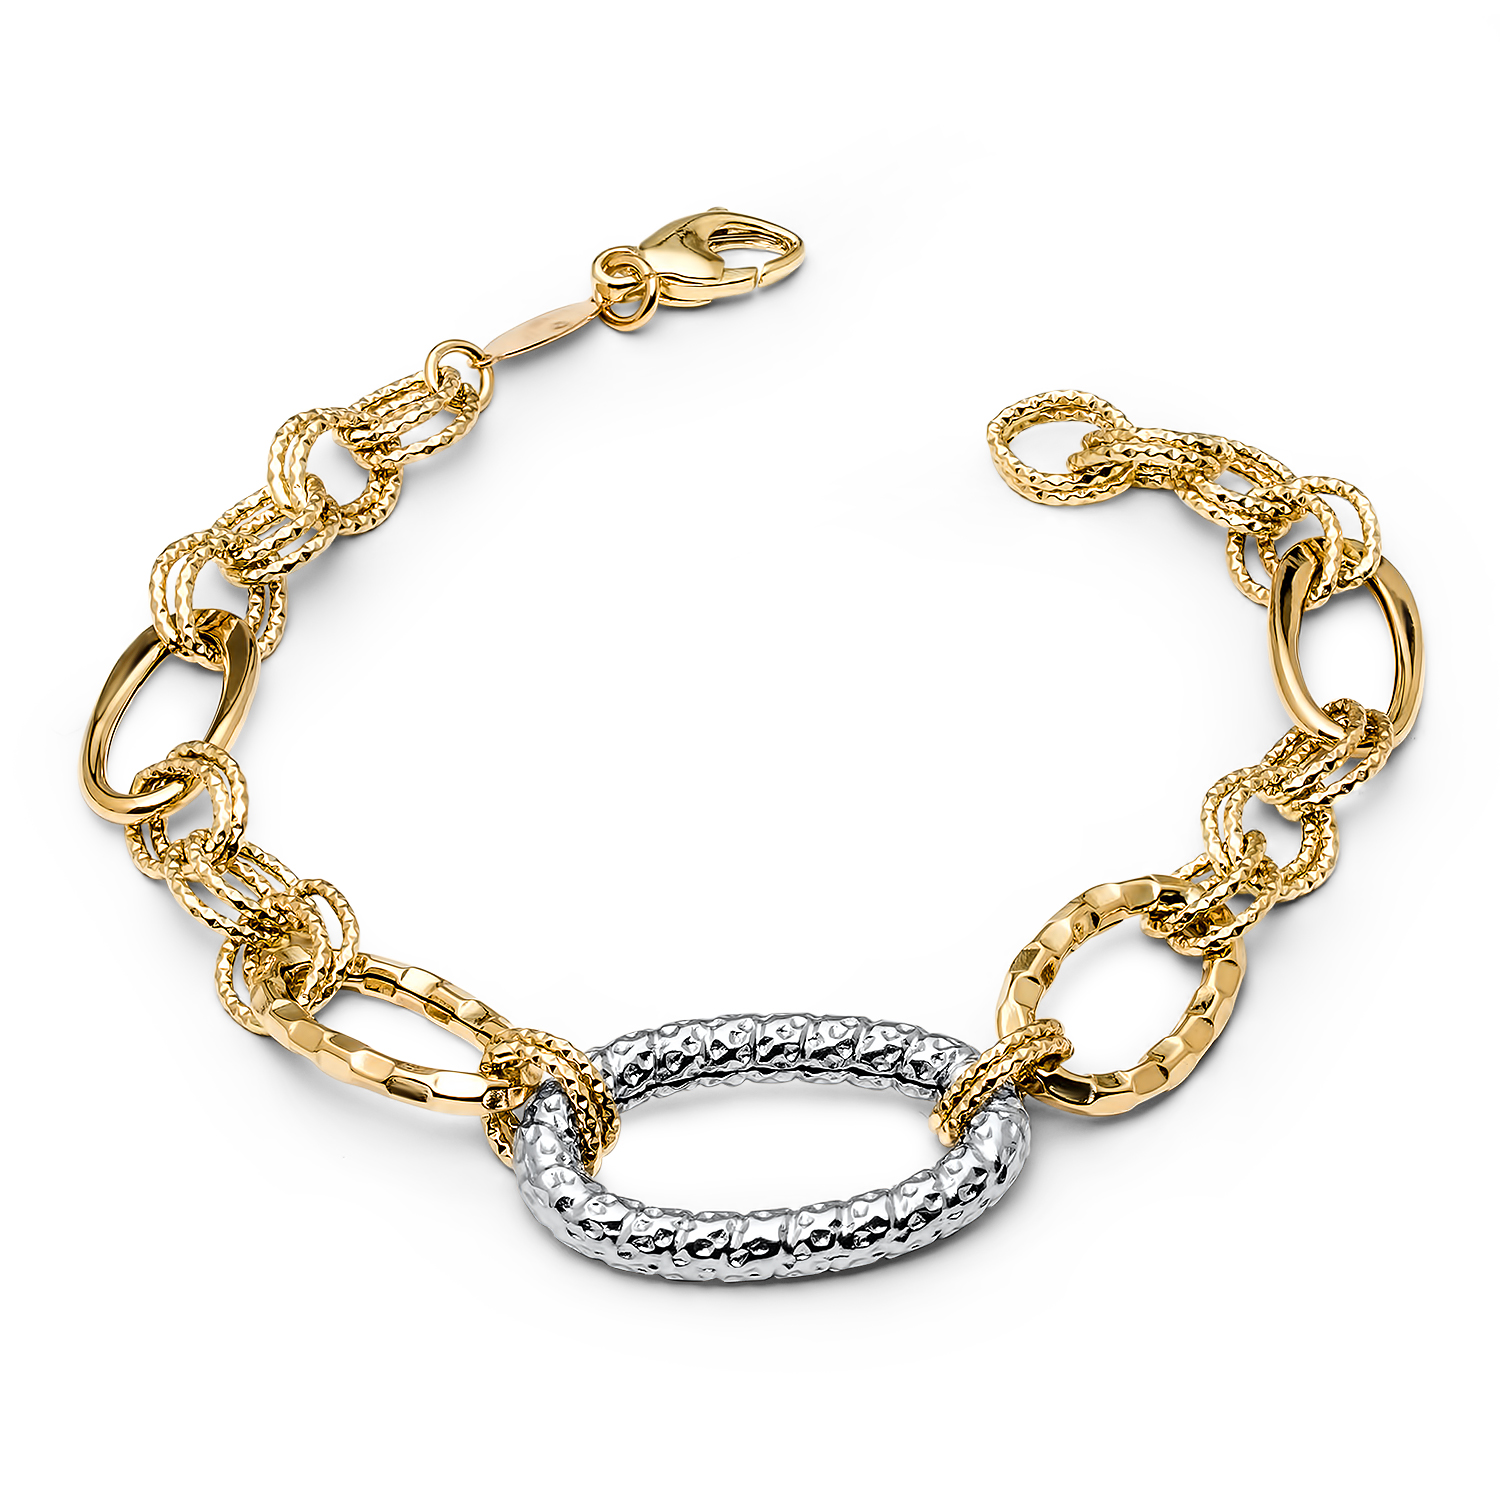 14k Gold Two-Tone Textured Link Bracelet